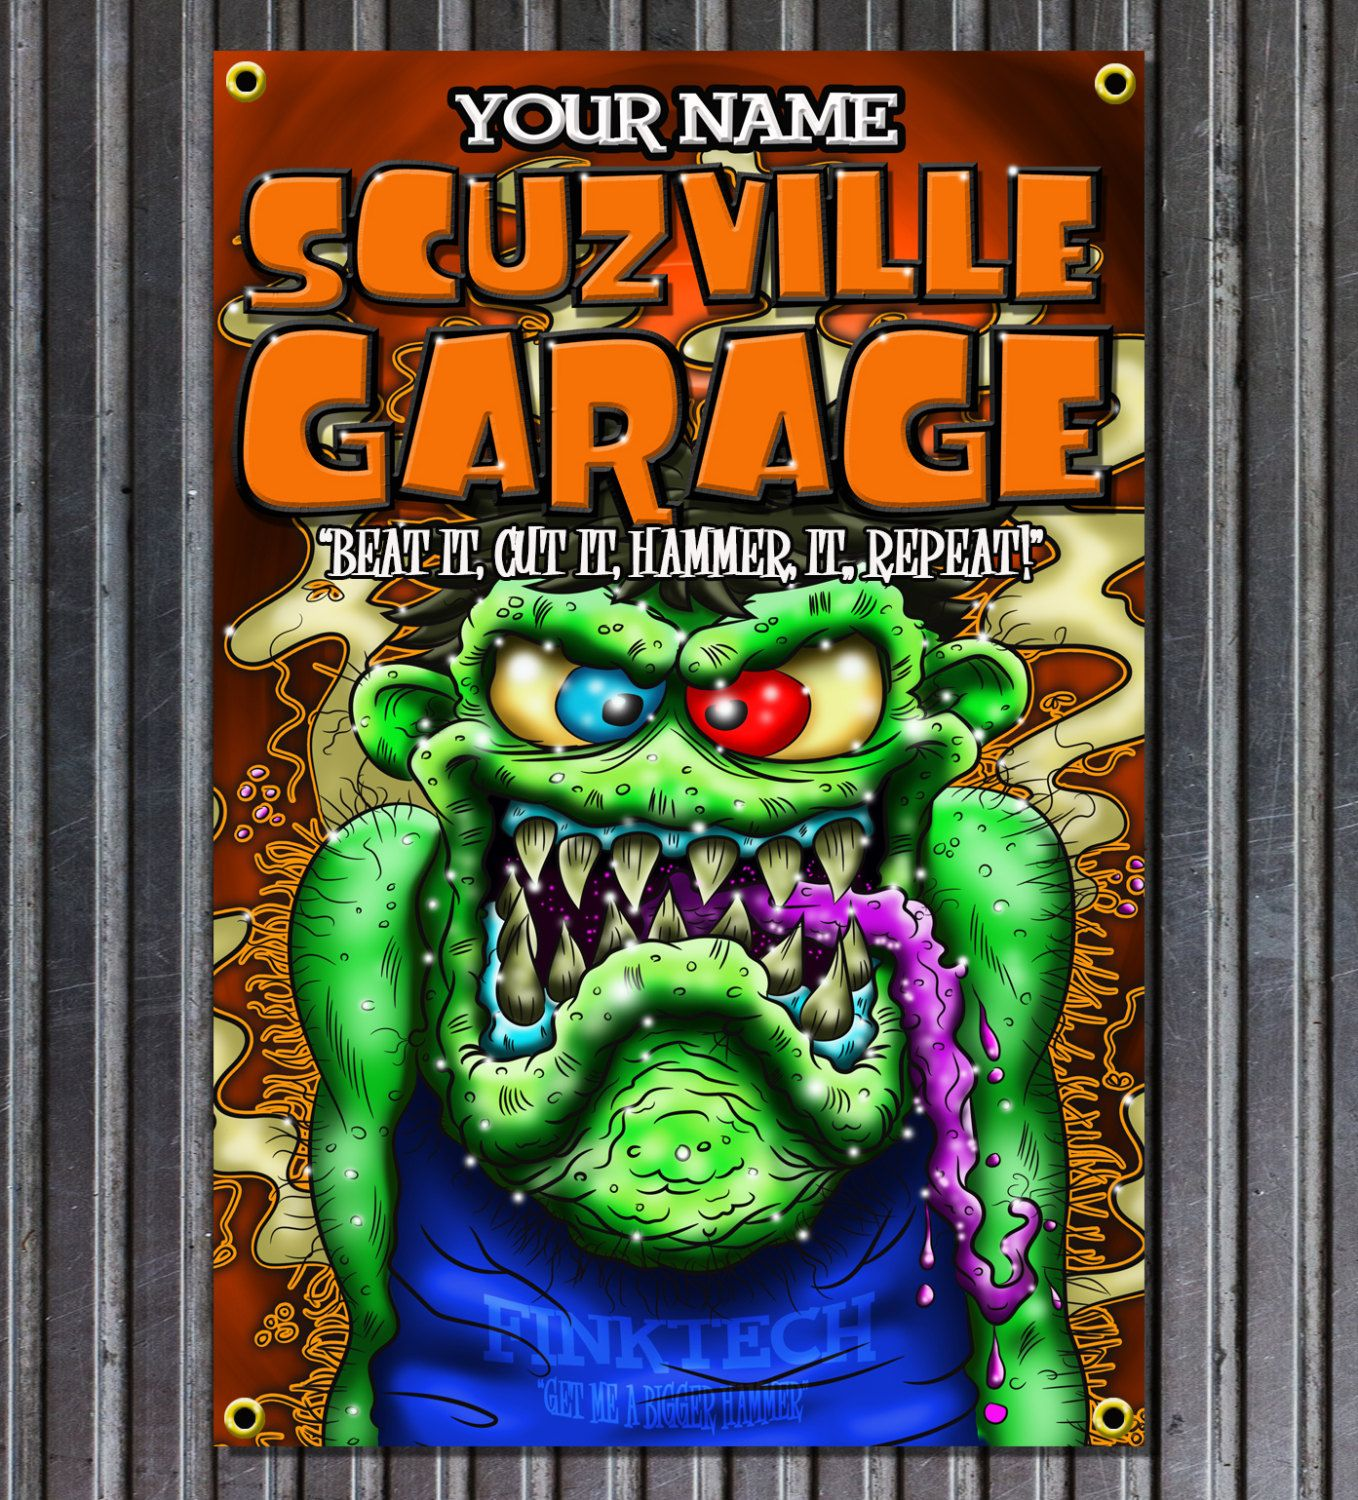 Fink Garage: Weirdo Scuzville Garage Rat Fink Style Vinyl Garage Or